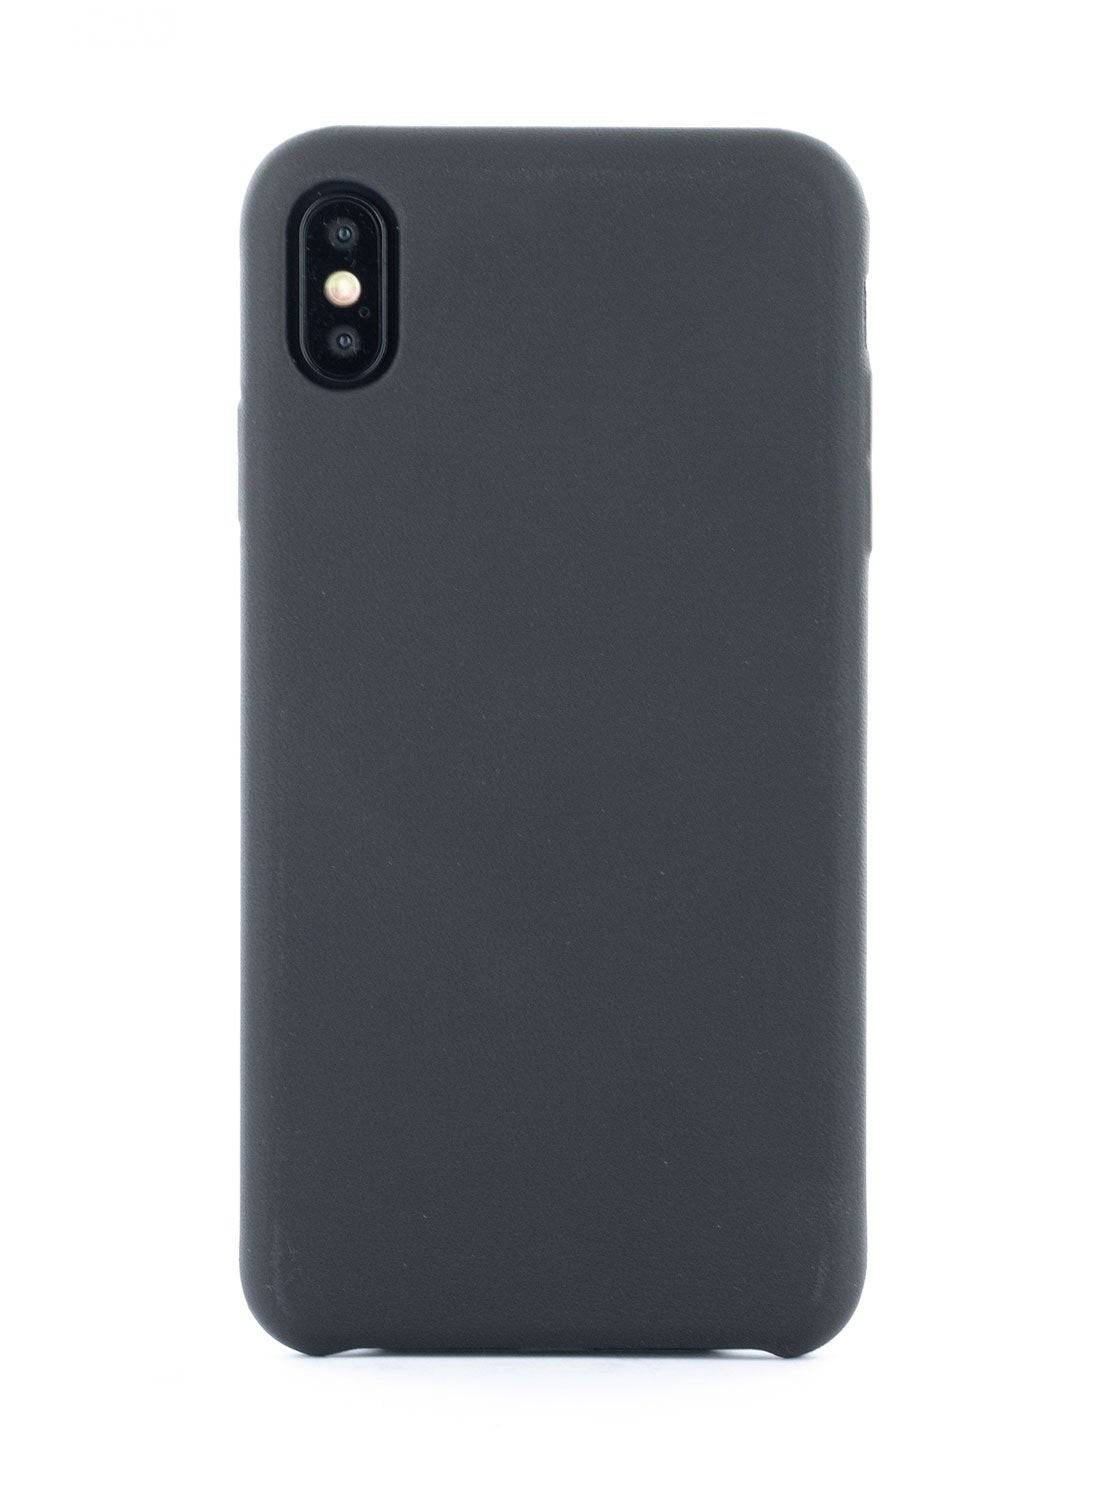 Greenwich AEON Luxury Leather Wrapped Back Shell for iPhone XS Max - Beluga (Black)